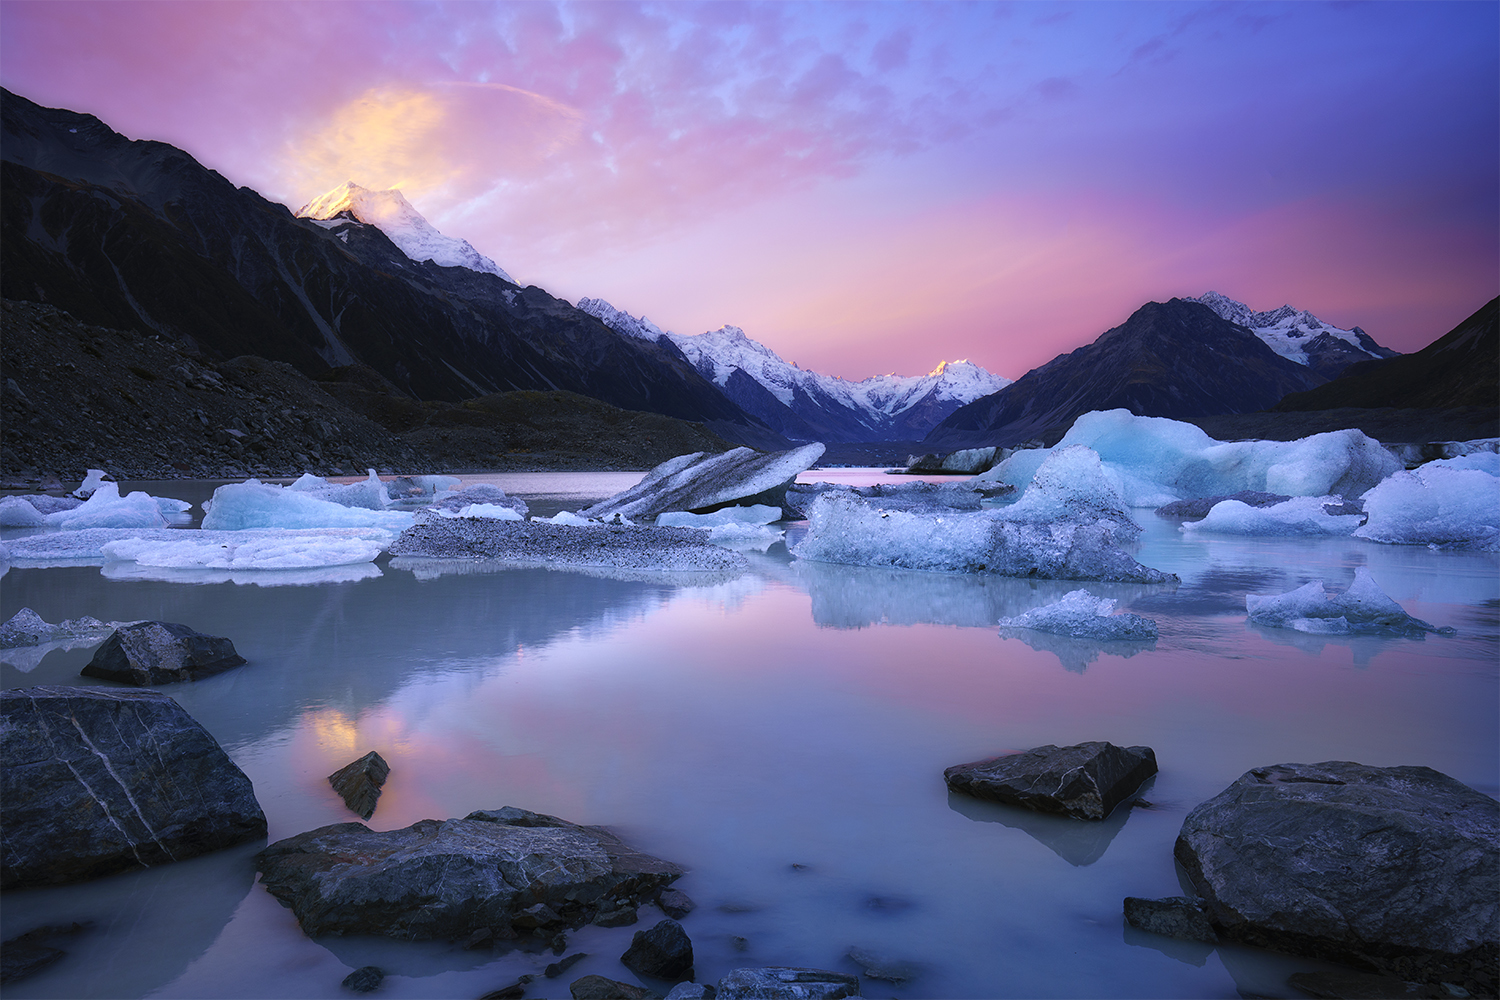 Winter photography workshop in New Zealand